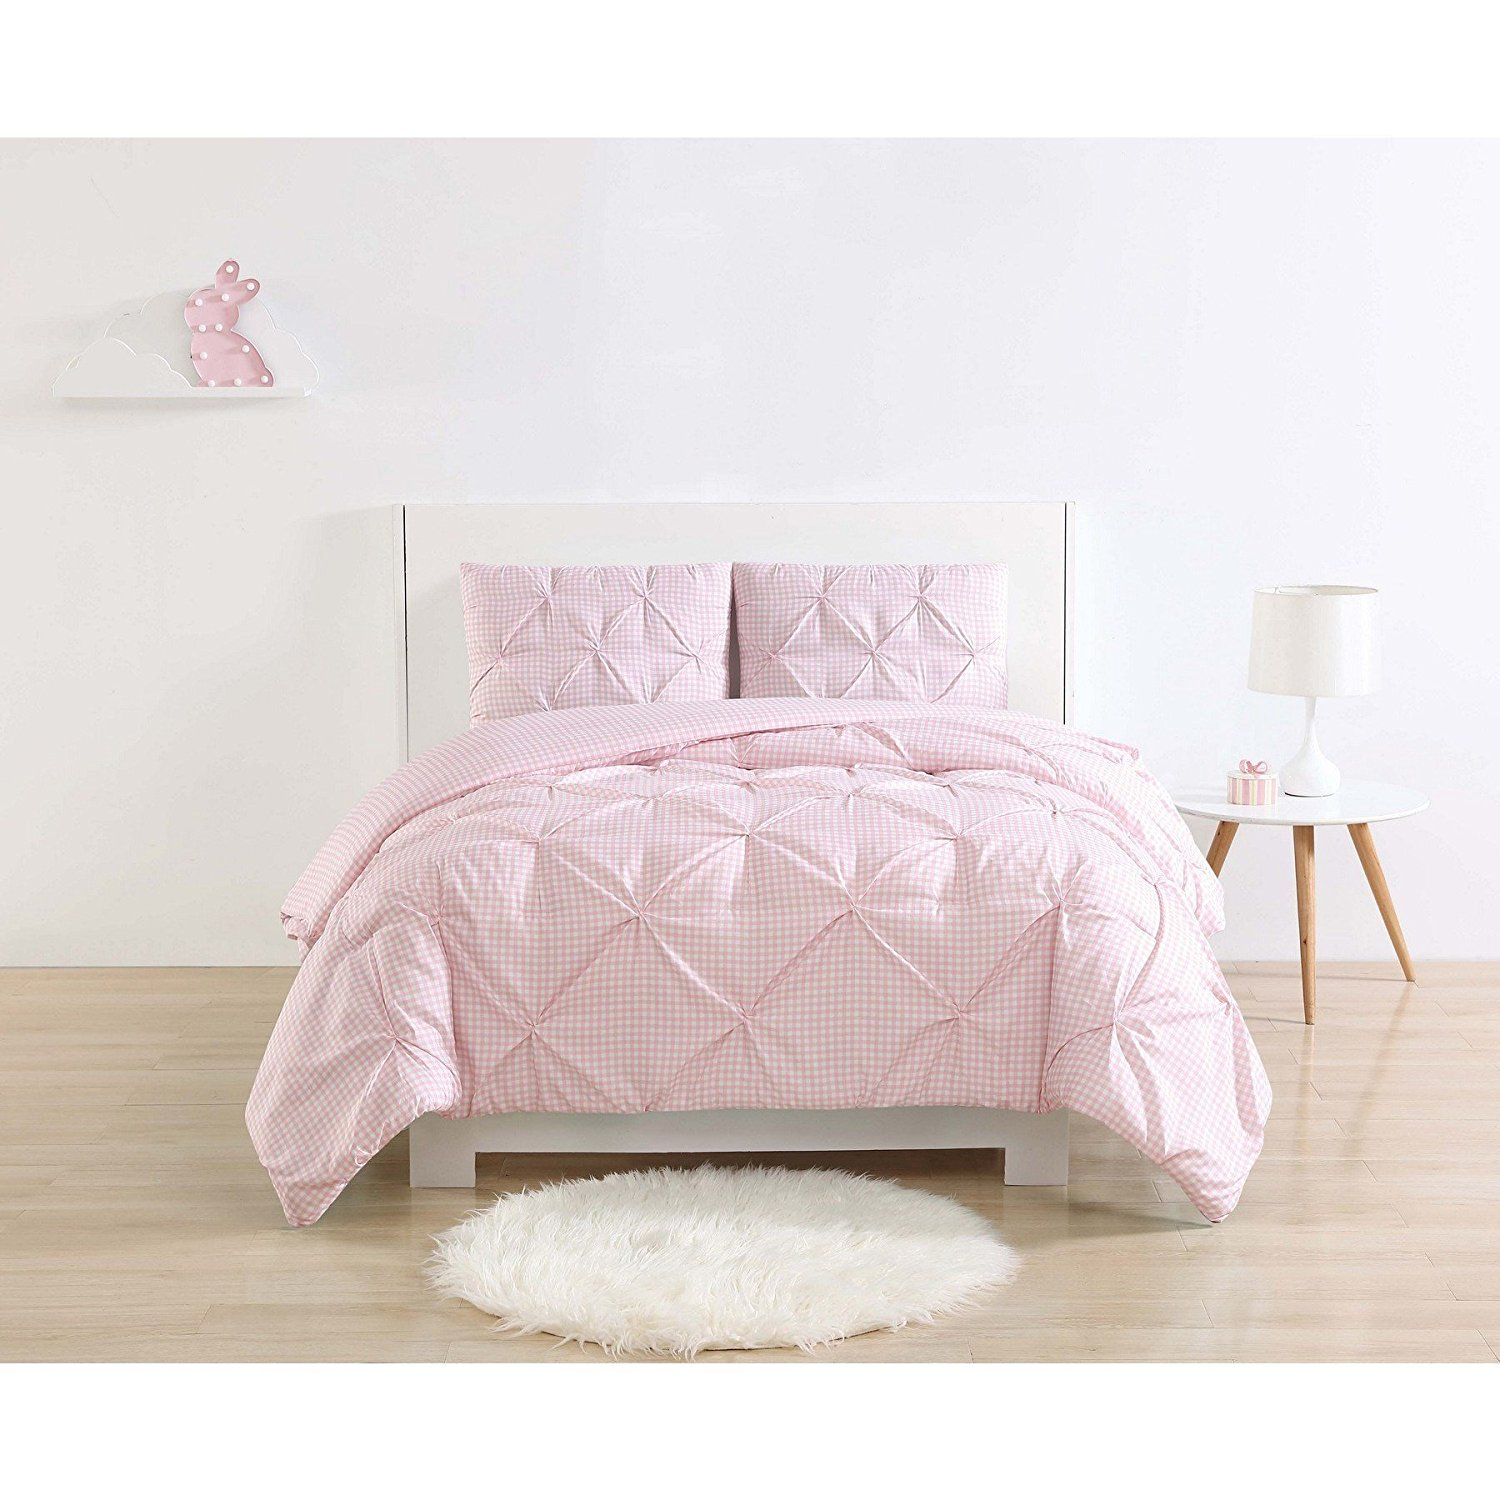 Ln 3 Piece Pink White Gingham Plaid Pattern Comforter Full Queen Set, Beautiful Classic Checkered Print Plush Bedding, Casual Style, Bright Colors, Soft & Cozy Microfiber Polyester, Unisex